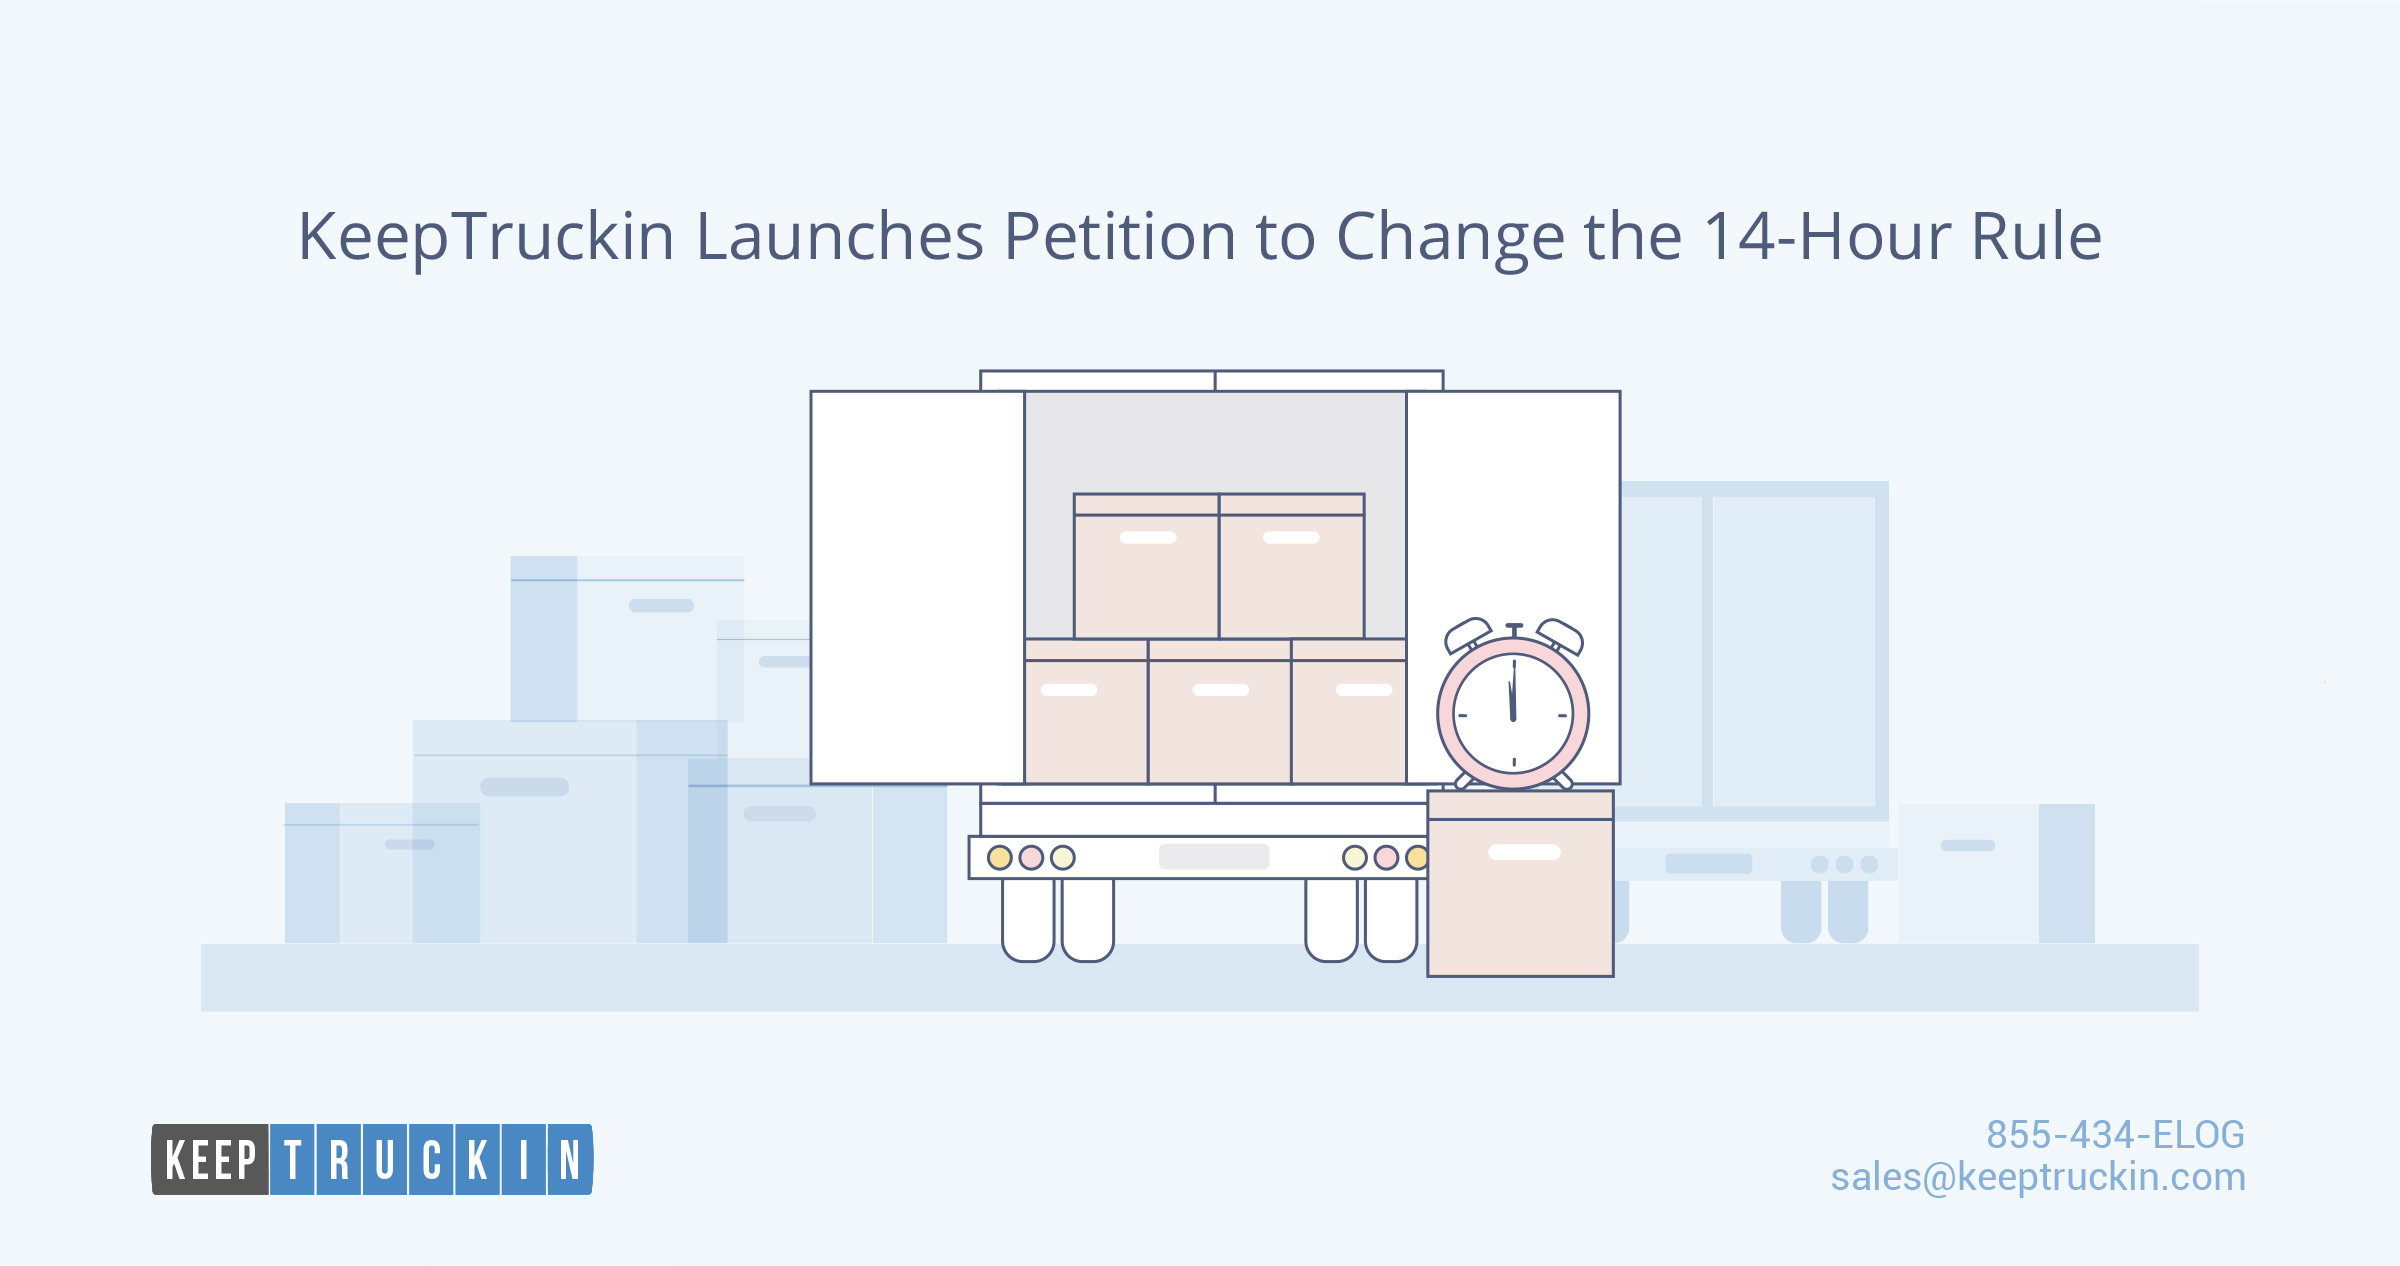 KeepTruckin Launches Petition to Change the 14-Hour Rule